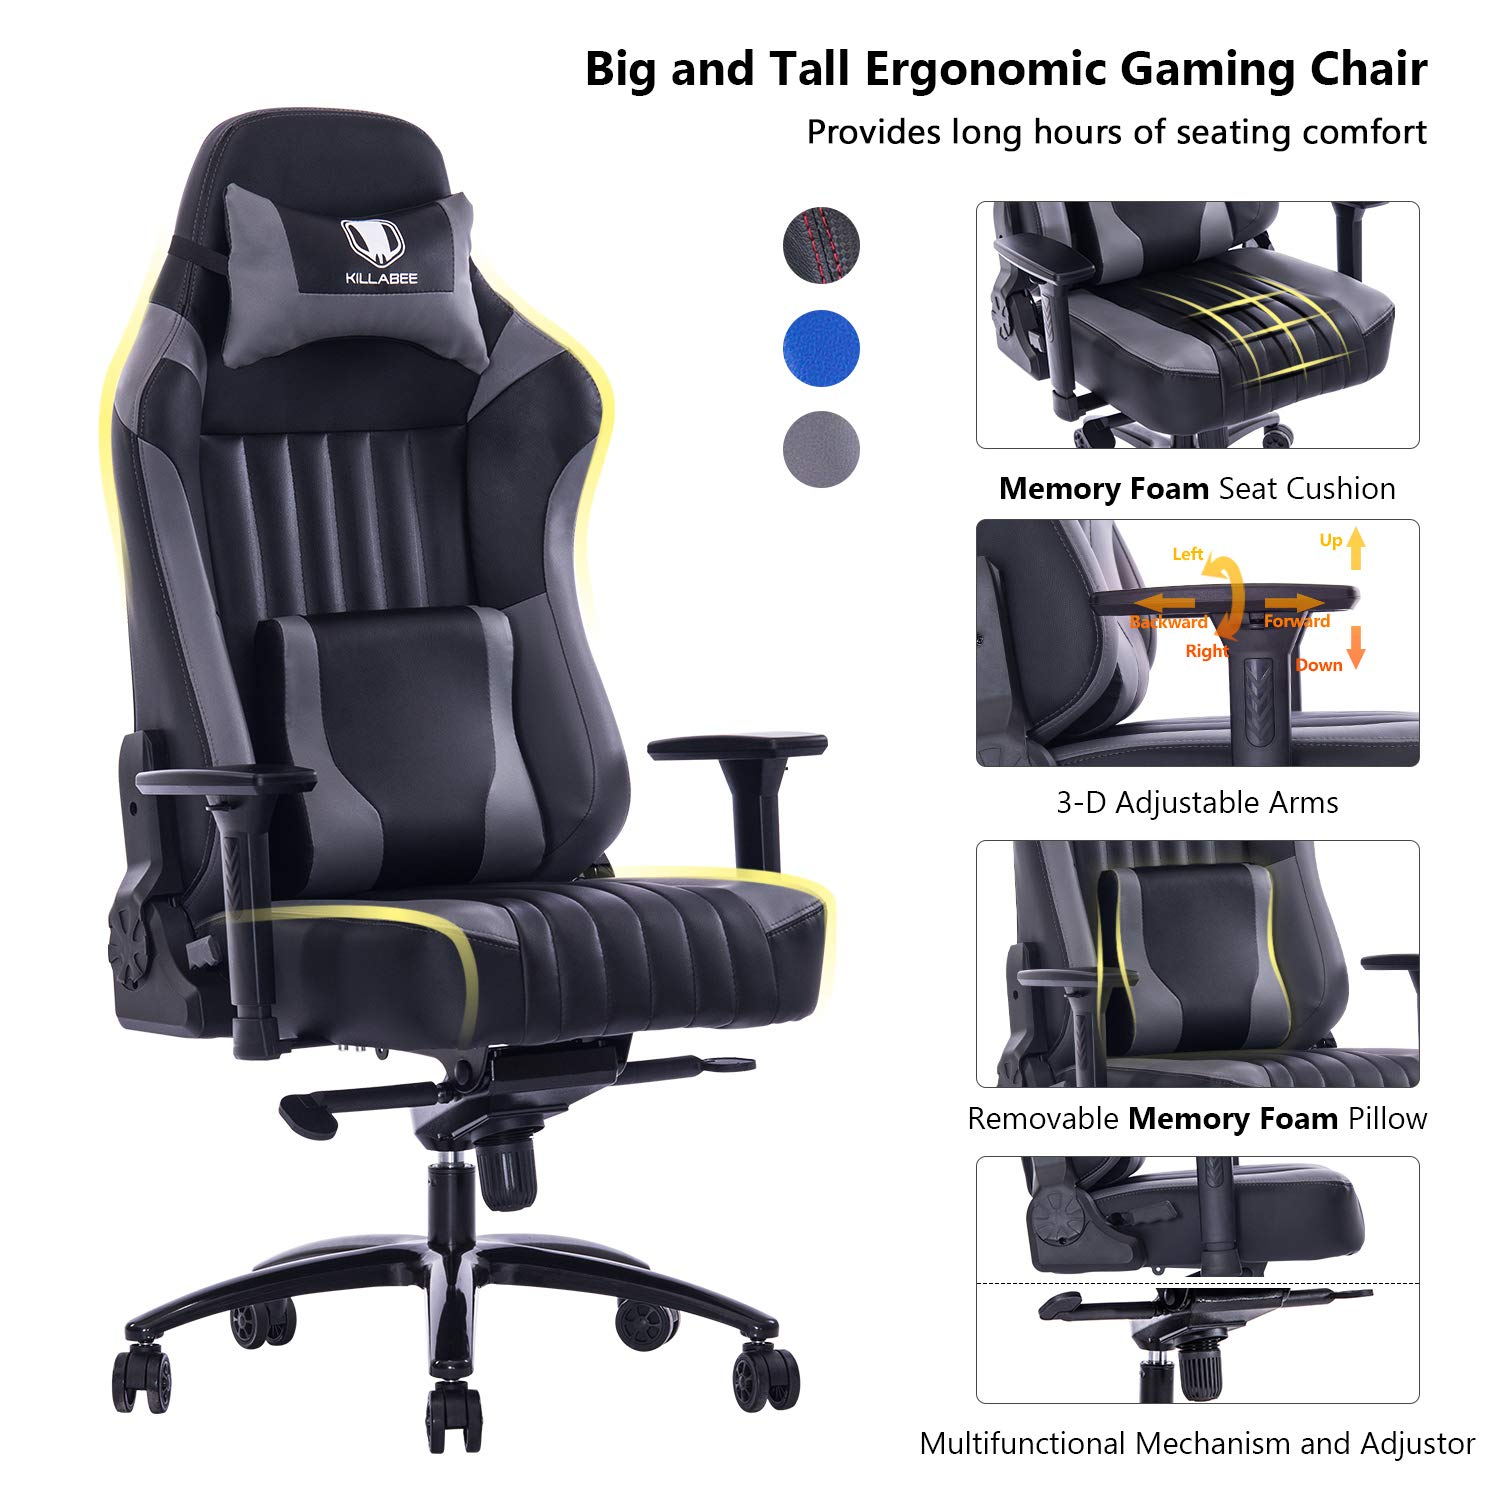 Amazing Von Racer Memory Foam Gaming Chair Adjustable Tilt Angle And 3D Arms Ergonomic High Back Leather Racing Executive Computer Desk Office Metal Base Unemploymentrelief Wooden Chair Designs For Living Room Unemploymentrelieforg